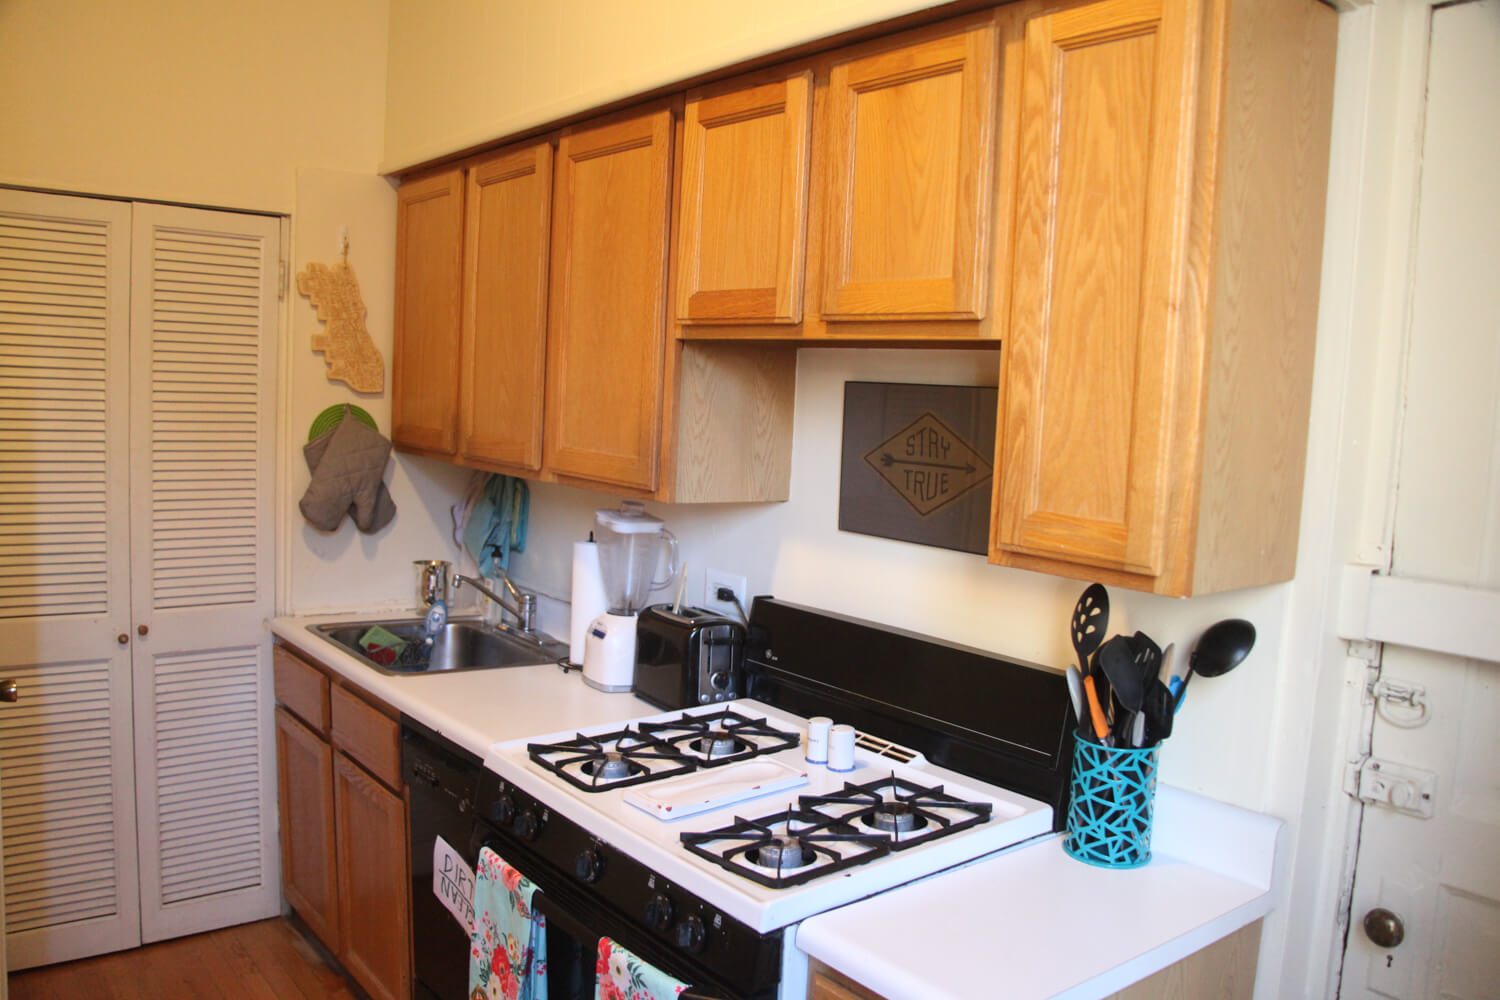 Renovate a rental kitchen